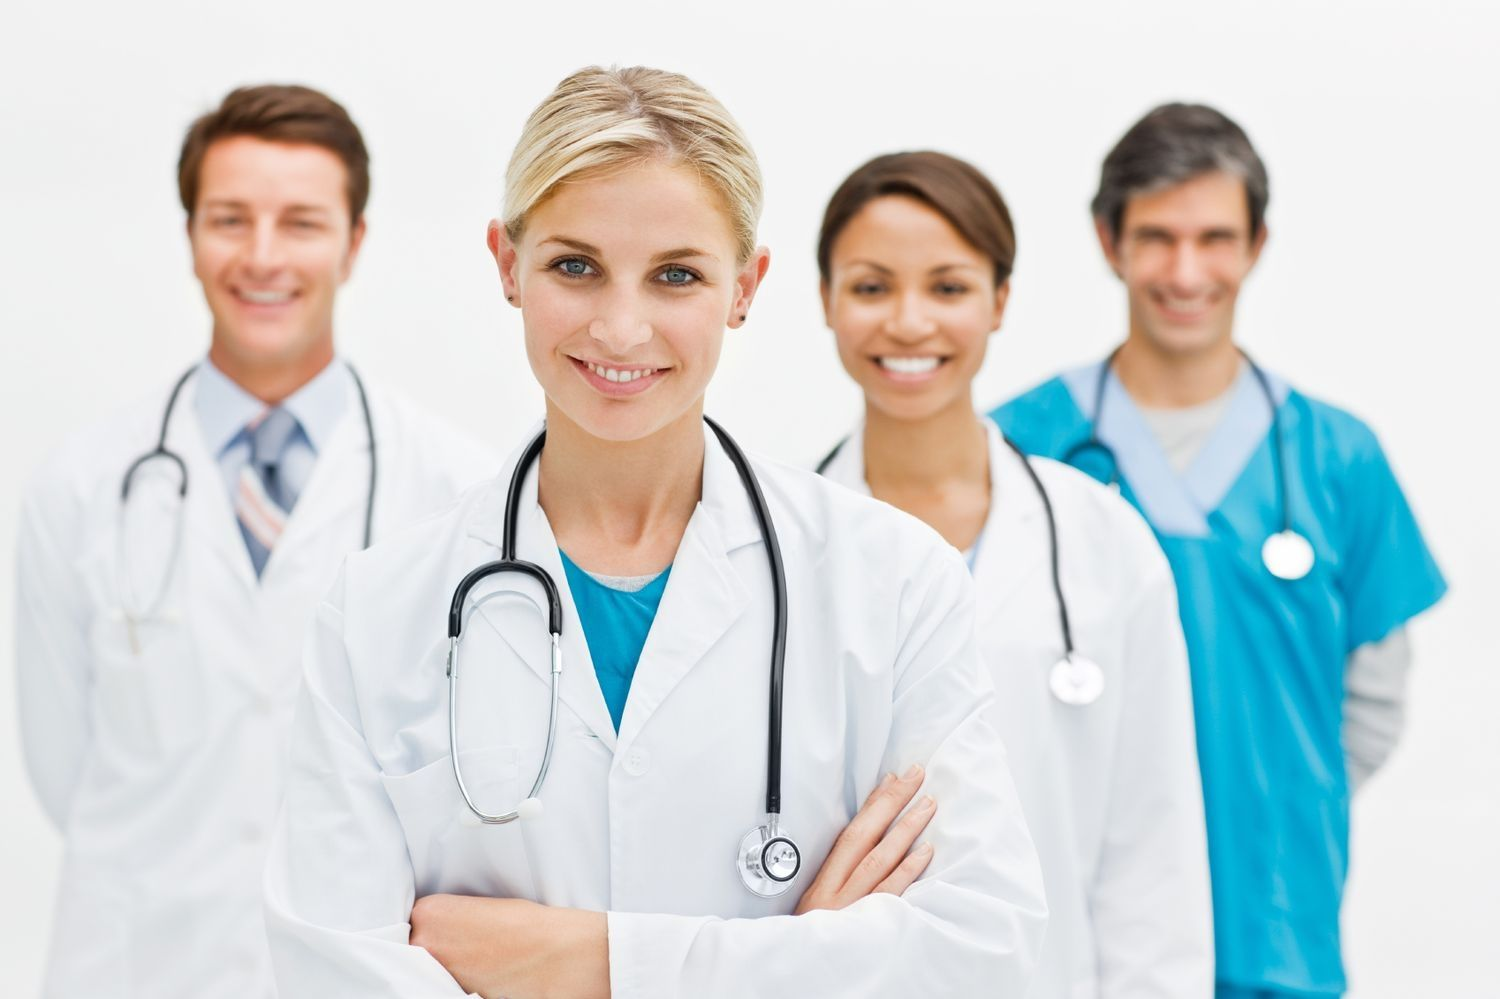 doctor dream meaning, dream about doctor, doctor dream interpretation, seeing in a dream doctor